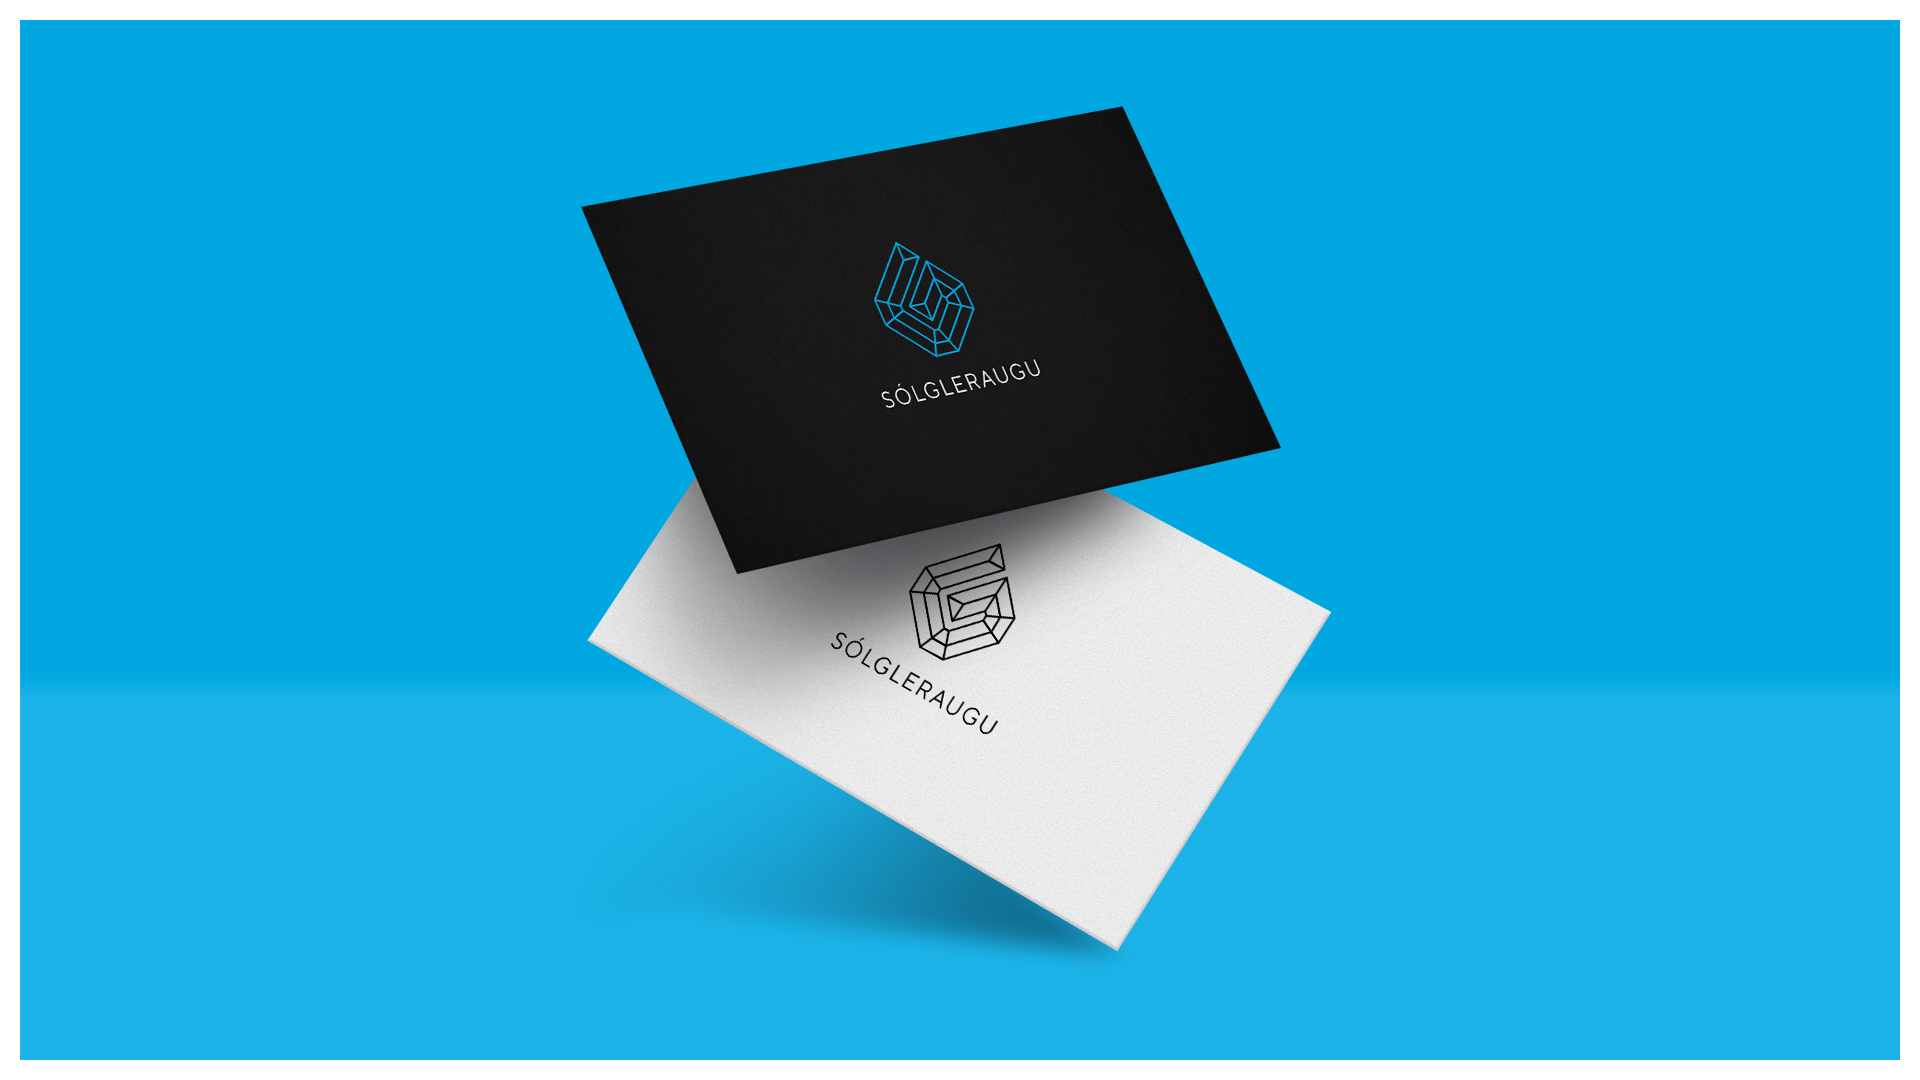 solgleraugu-business-cards-1920×1080